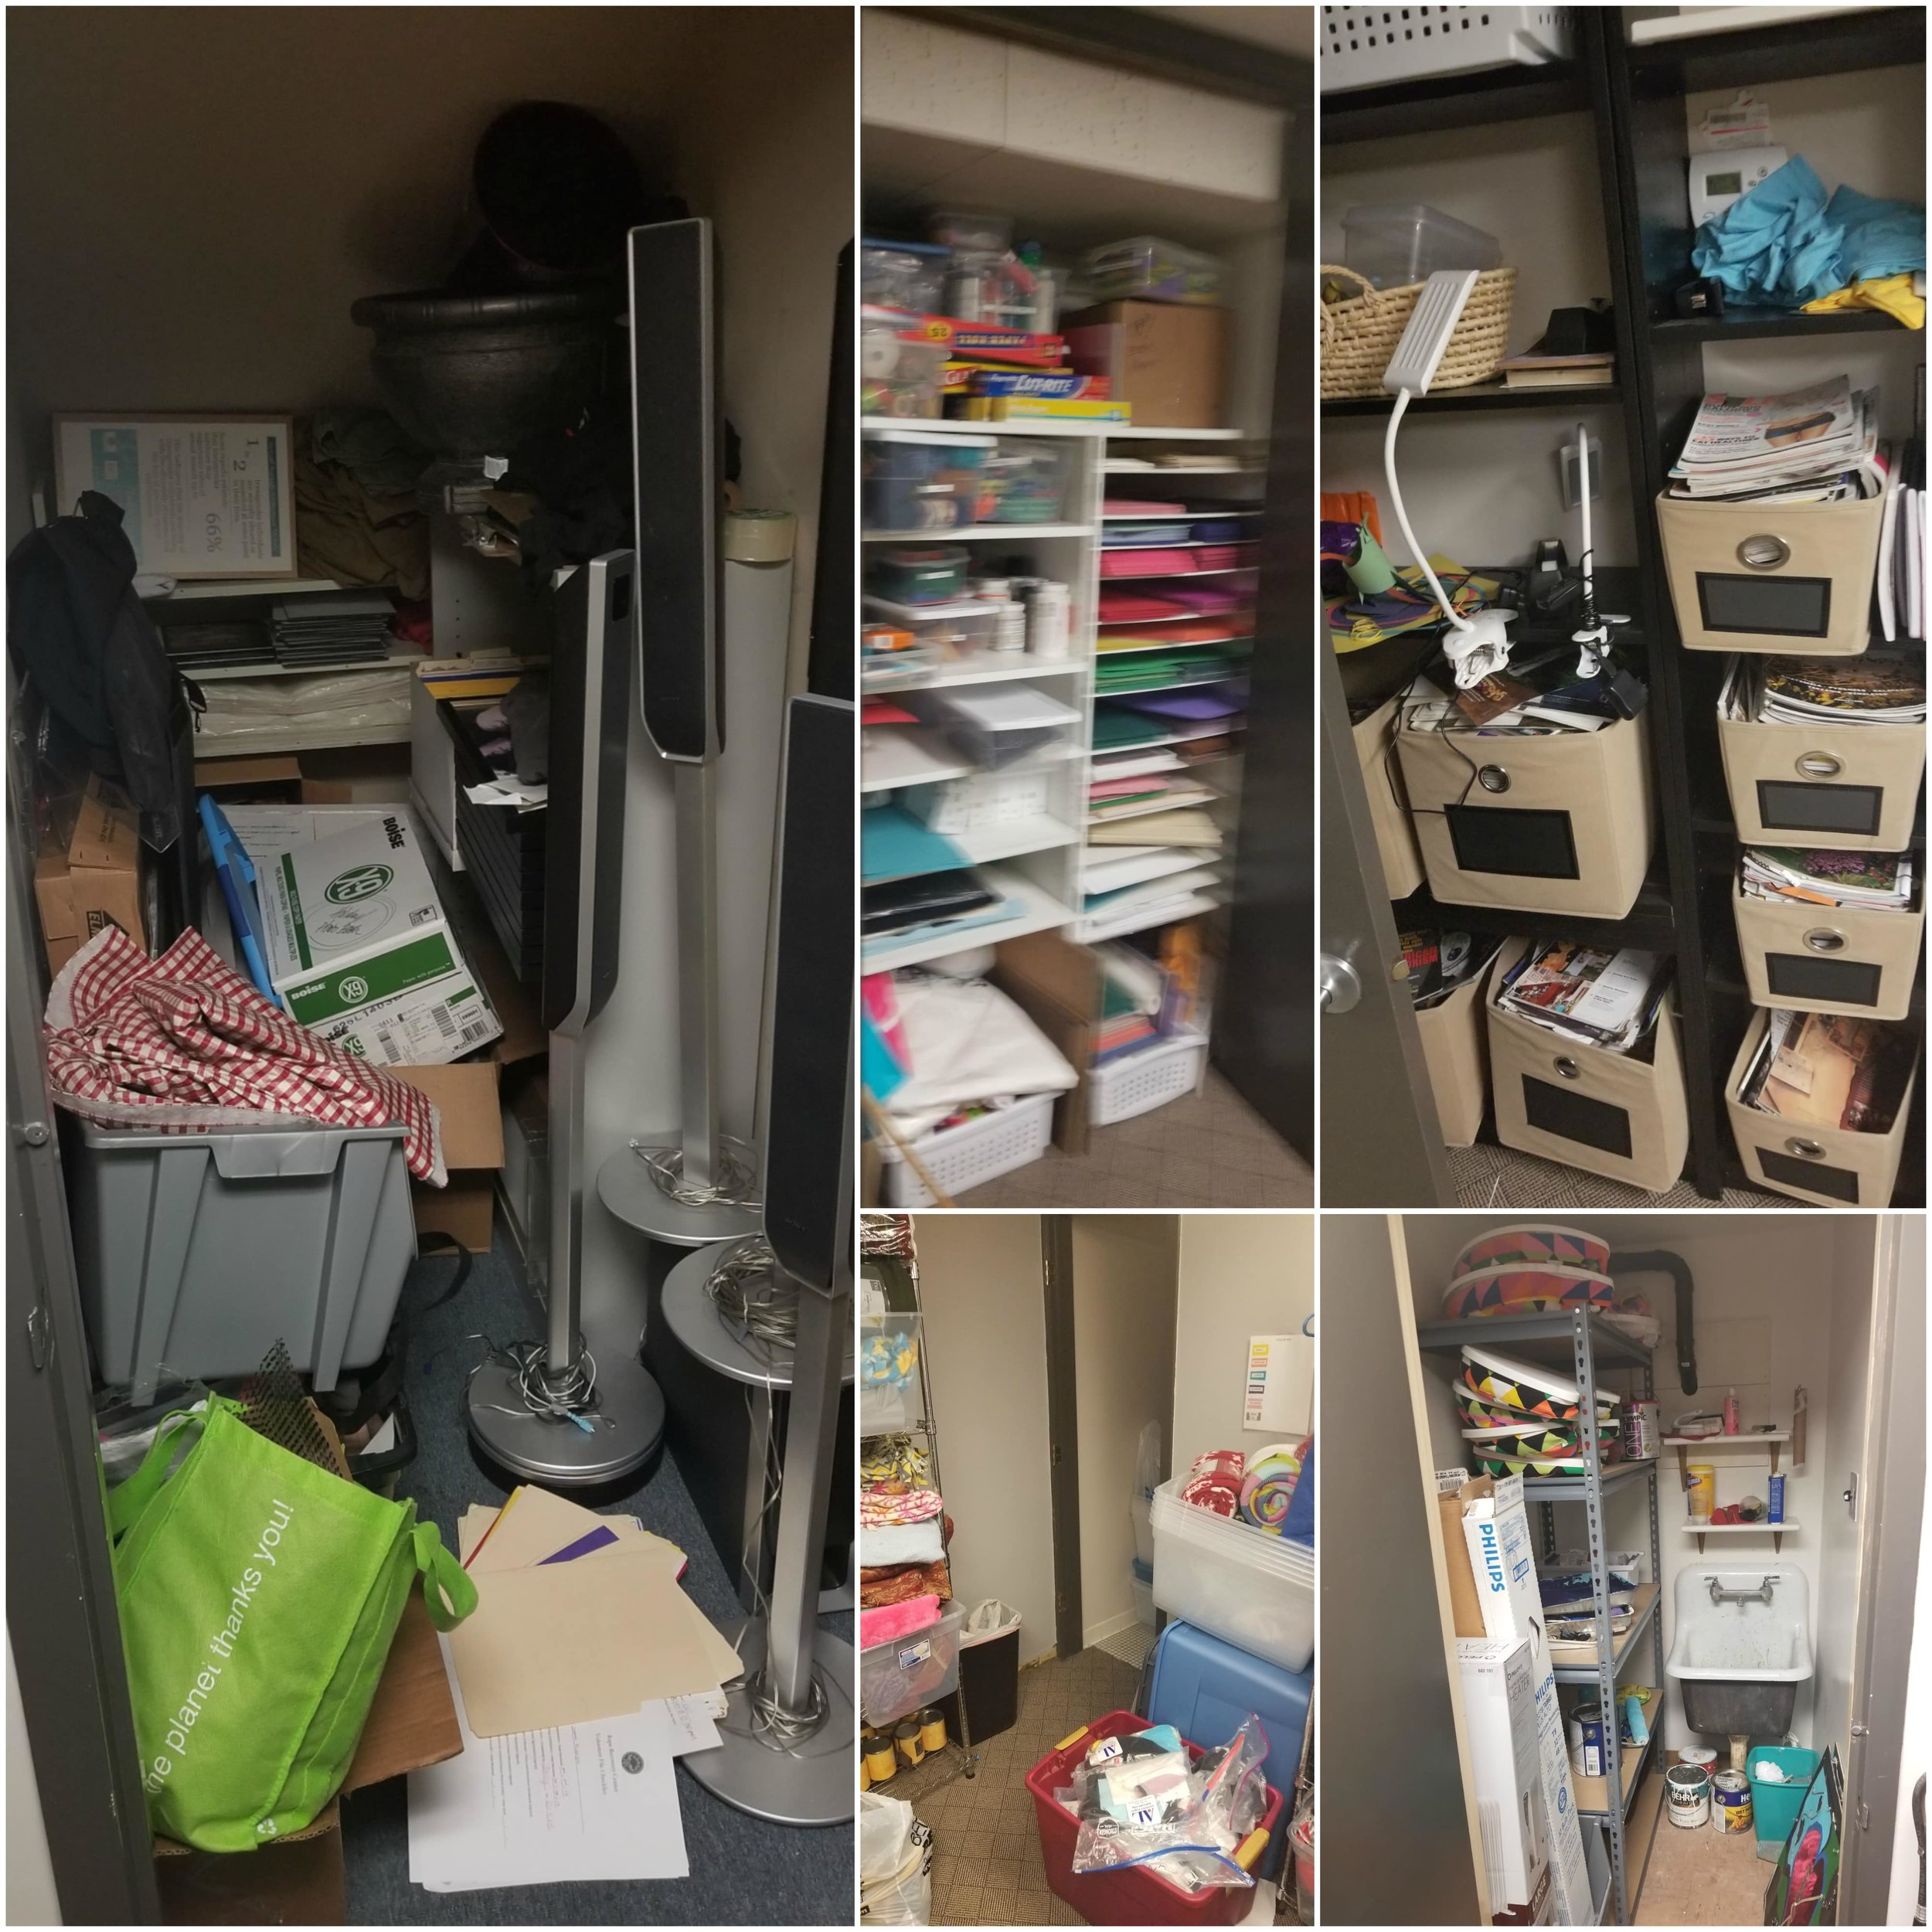 Here are just a few of the disorganized storage spaces that needed a little (or a lot) of TLC.